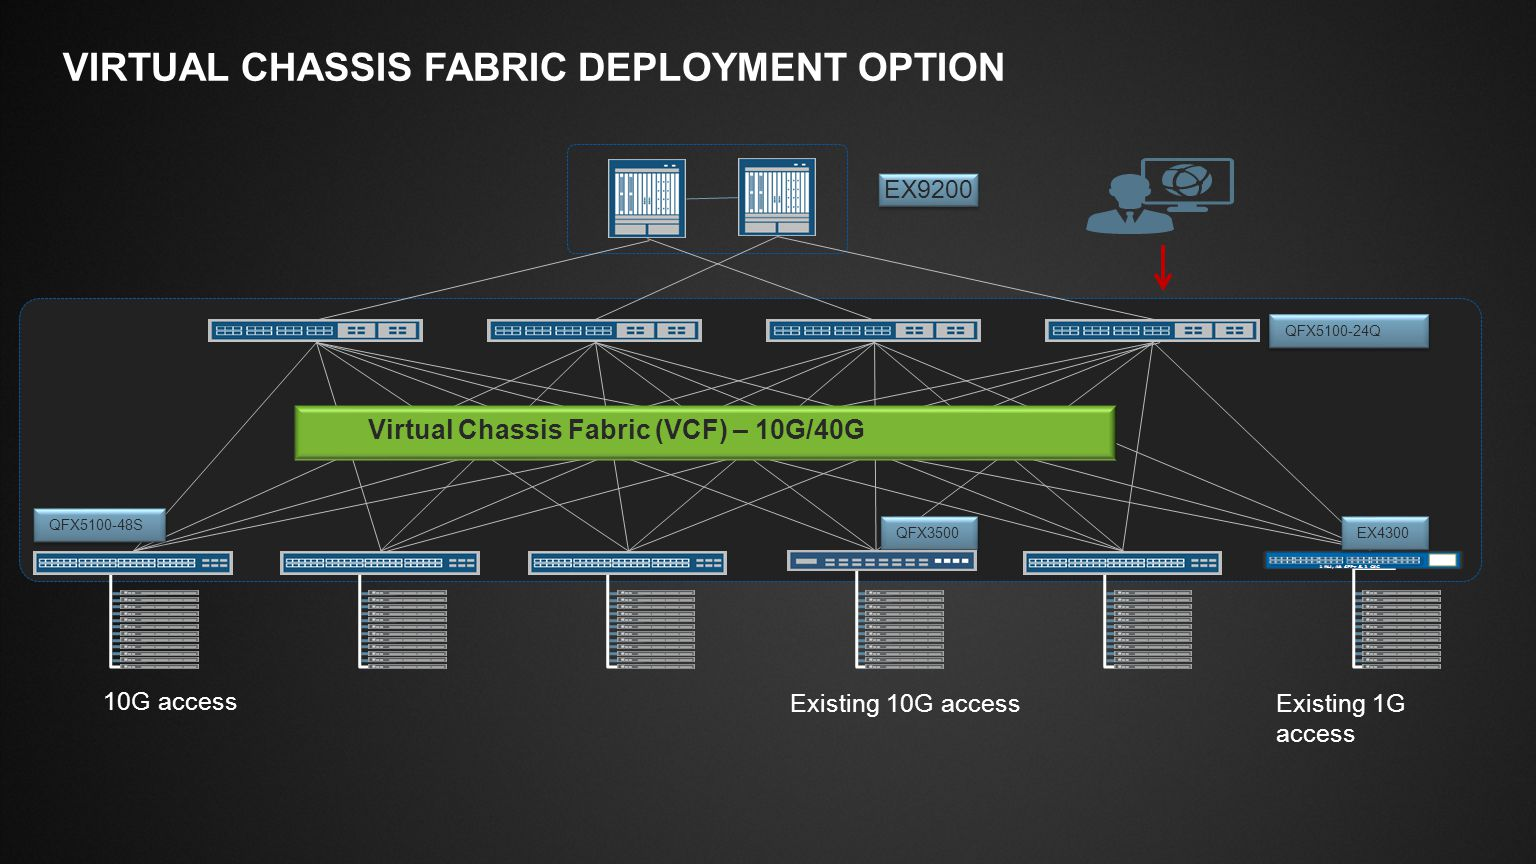 virtual chassis fabric Deployment option